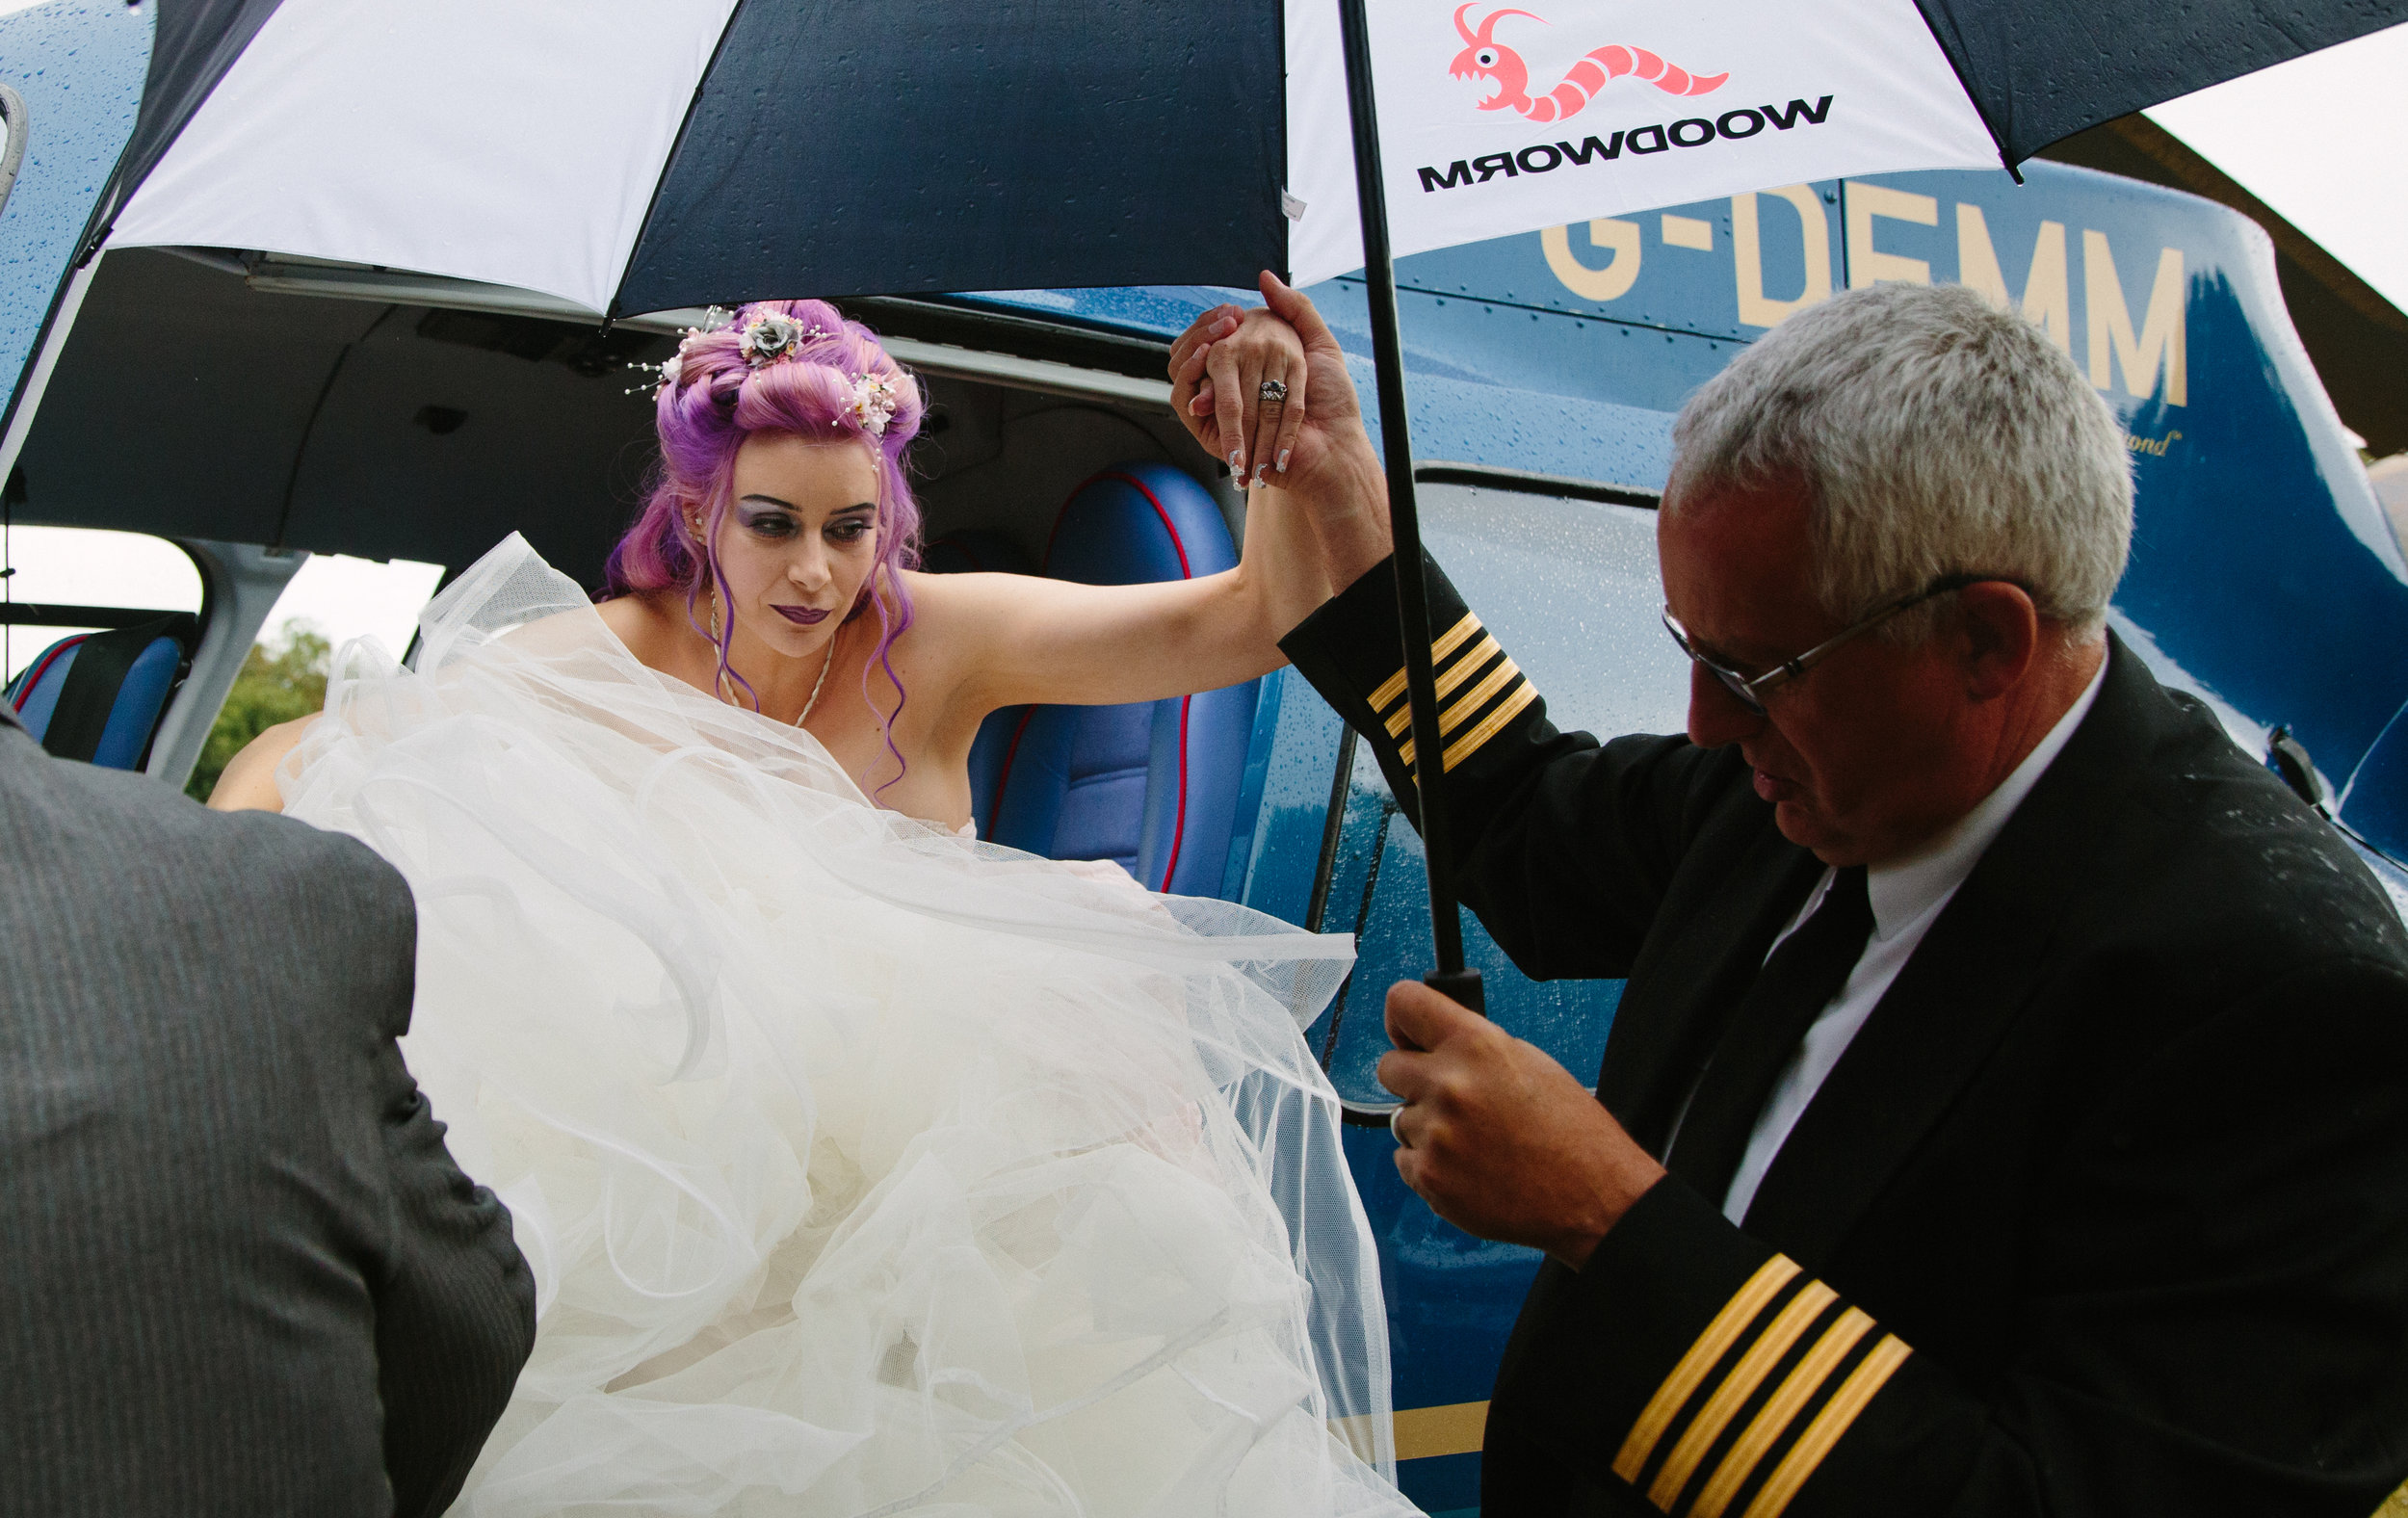 helicopter-landing-bride-essex-movie-theme-wedding-17